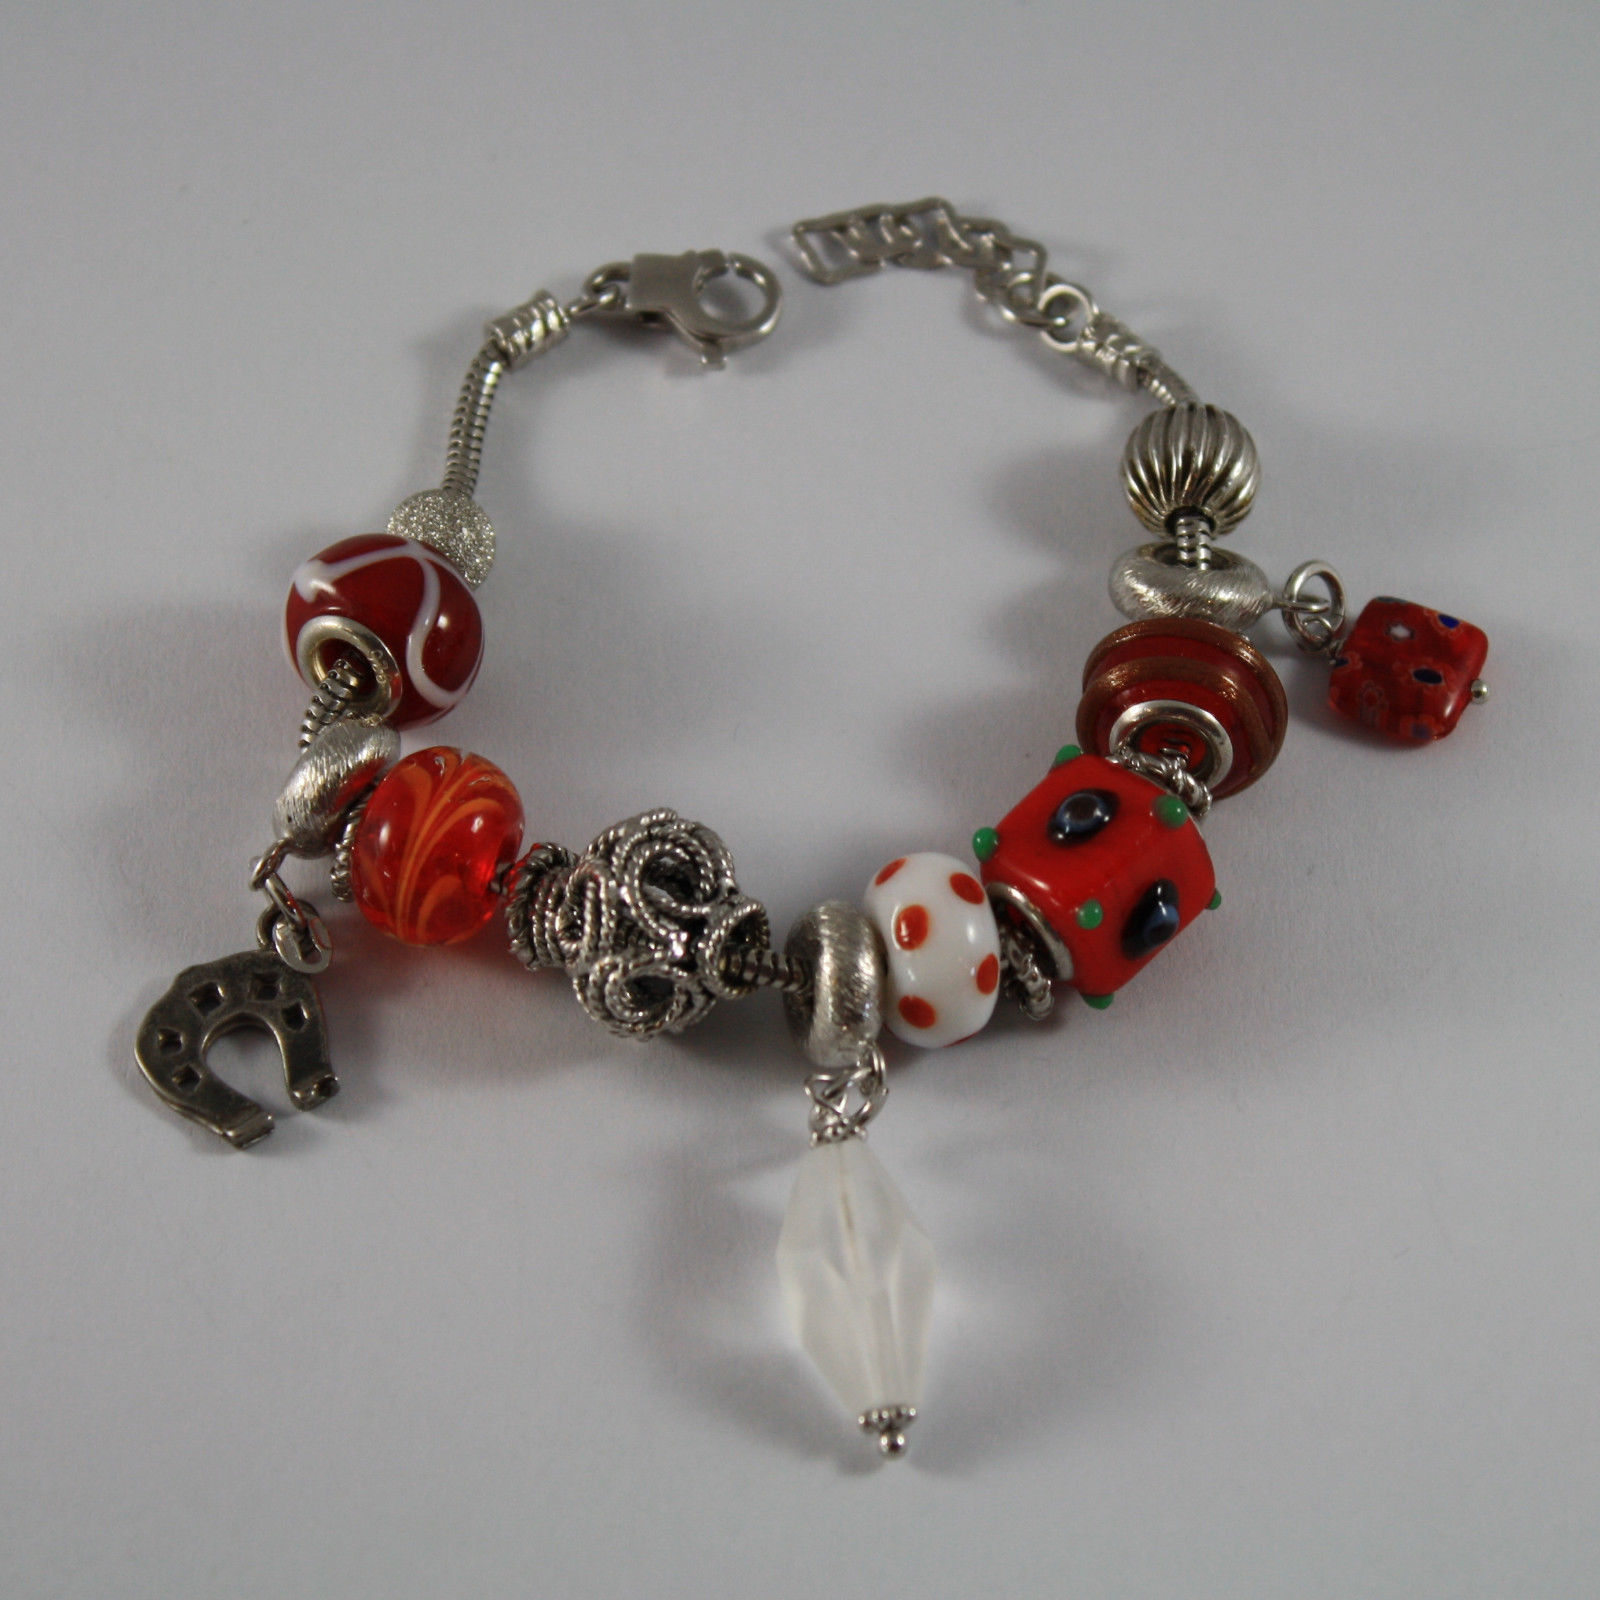 .925 RHODIUM SILVER BRACELET WITH MURRINE AND SLIDING PENDANTS